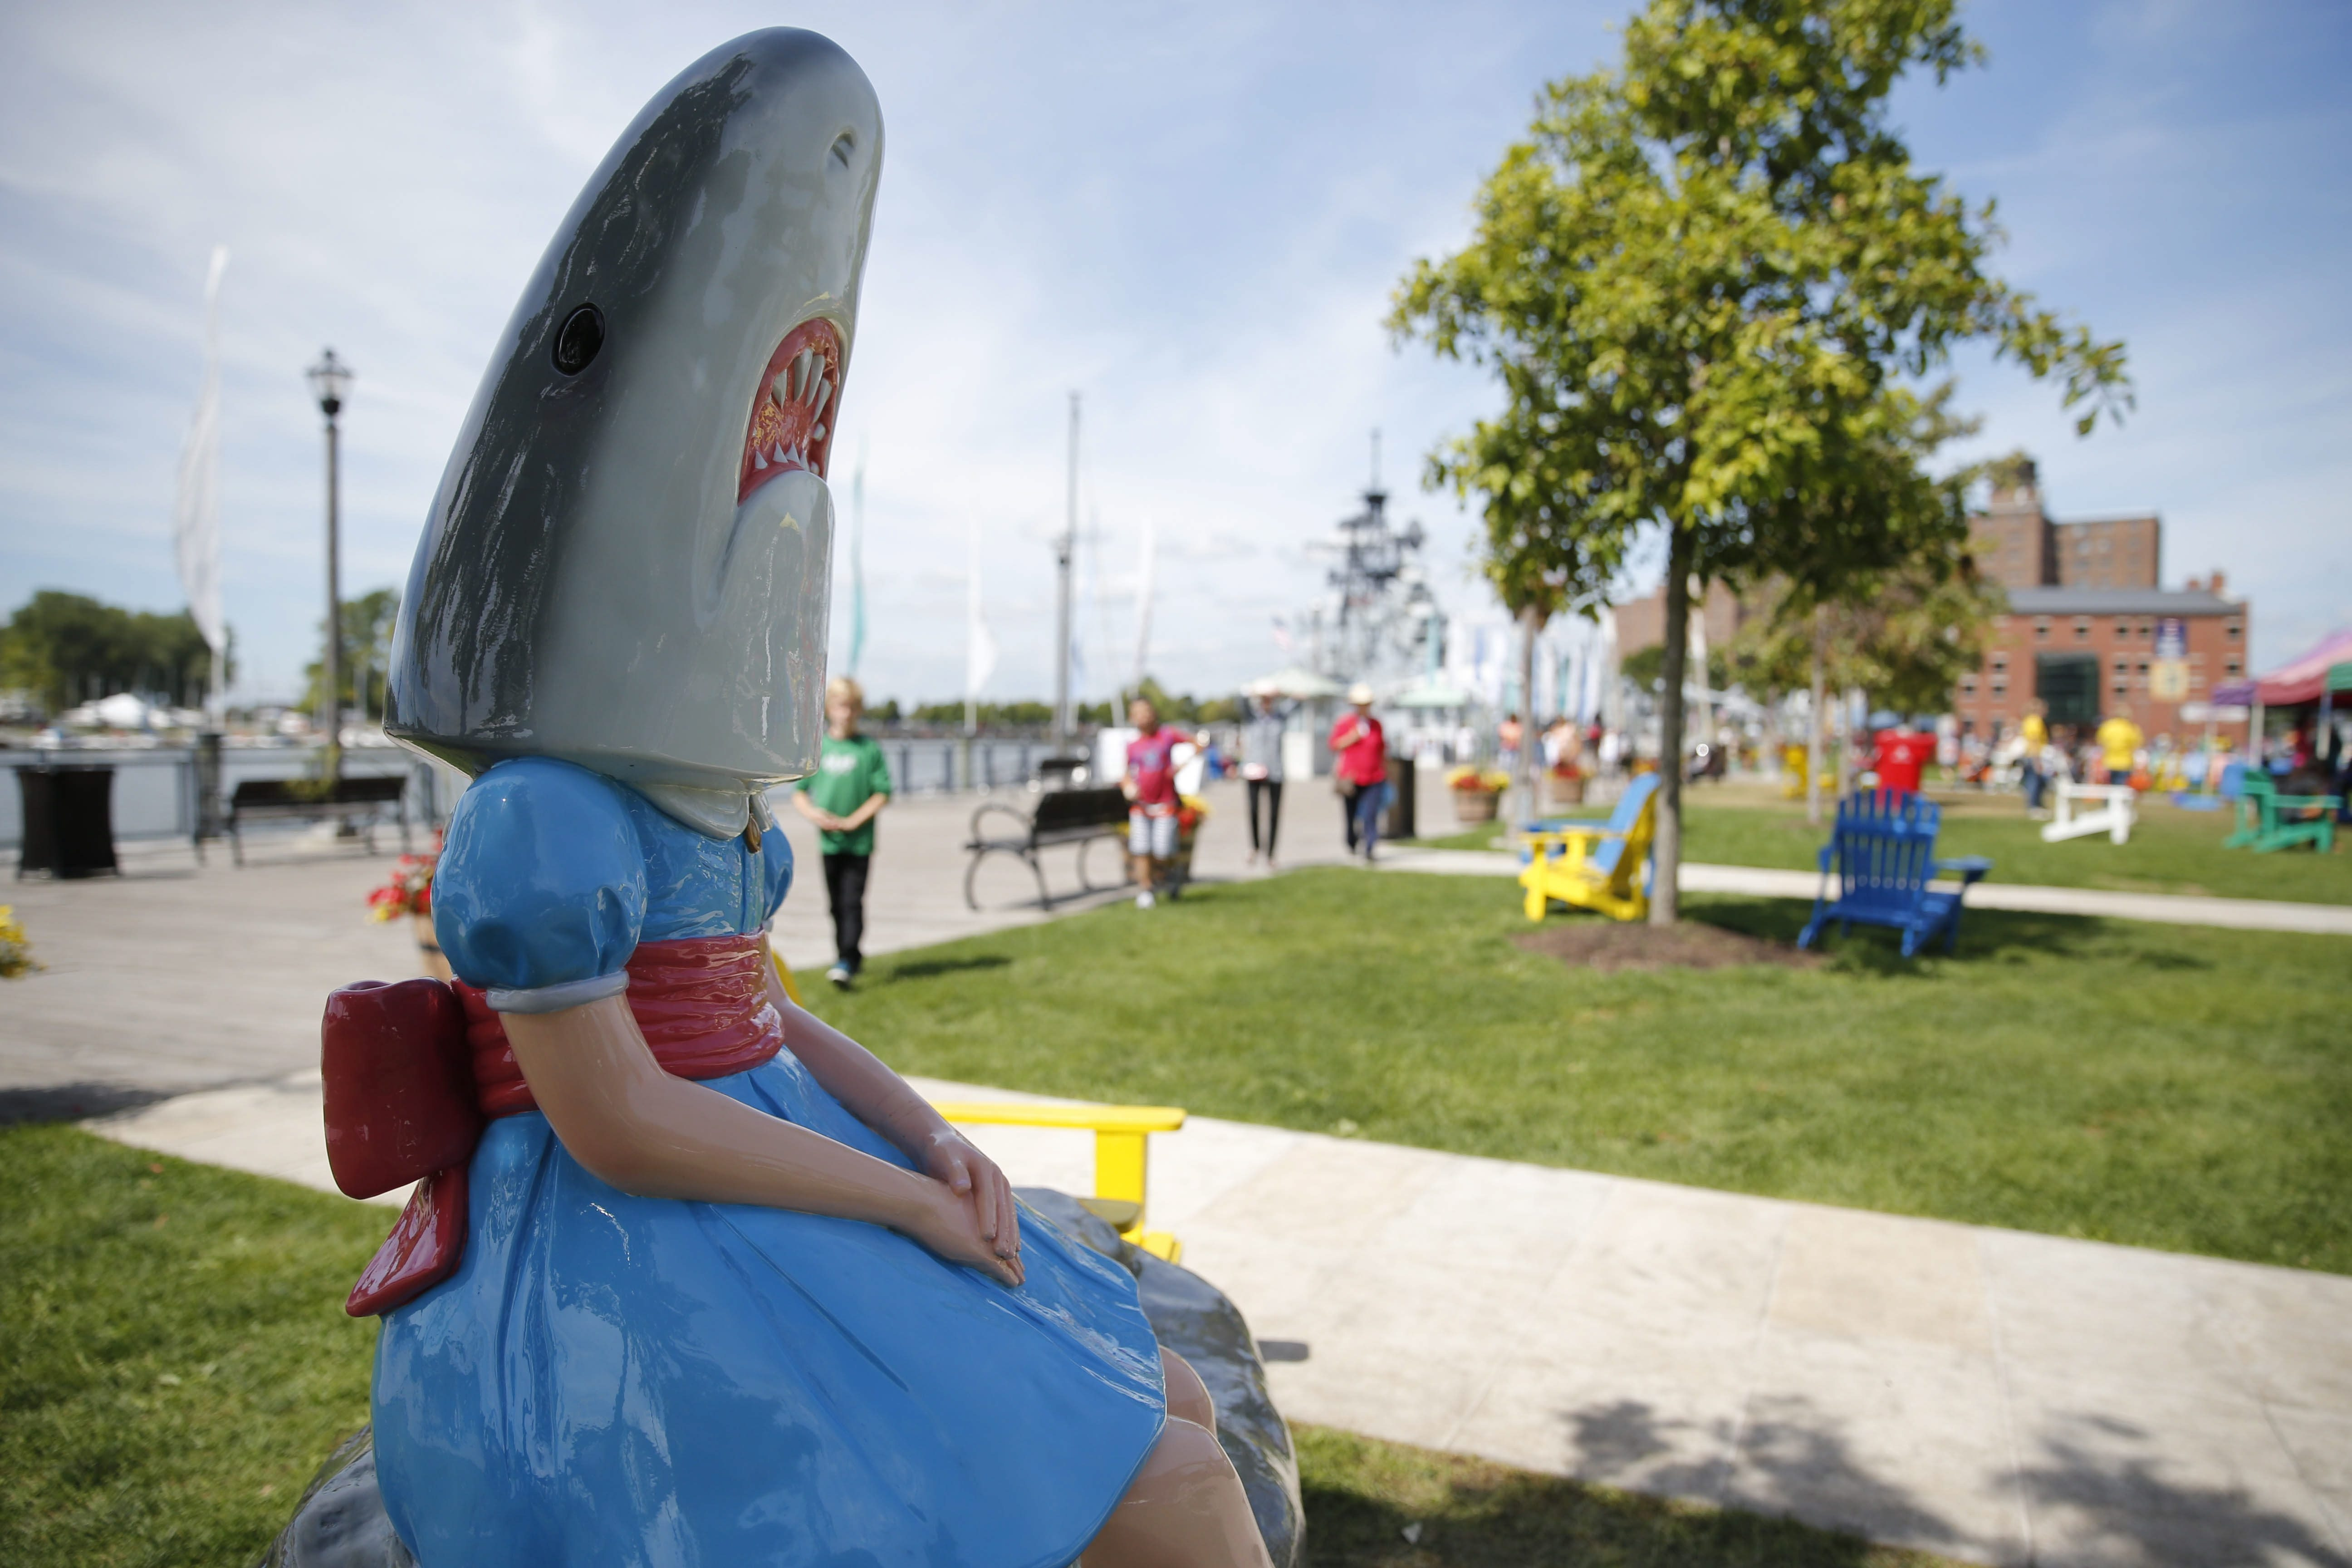 """The """"Shark Girl"""" statue at Canalside by artist Casey Riordan Millard has become a viral attraction since she was unveiled this week, Friday, Aug. 29, 2014.  (Derek Gee/Buffalo News)"""